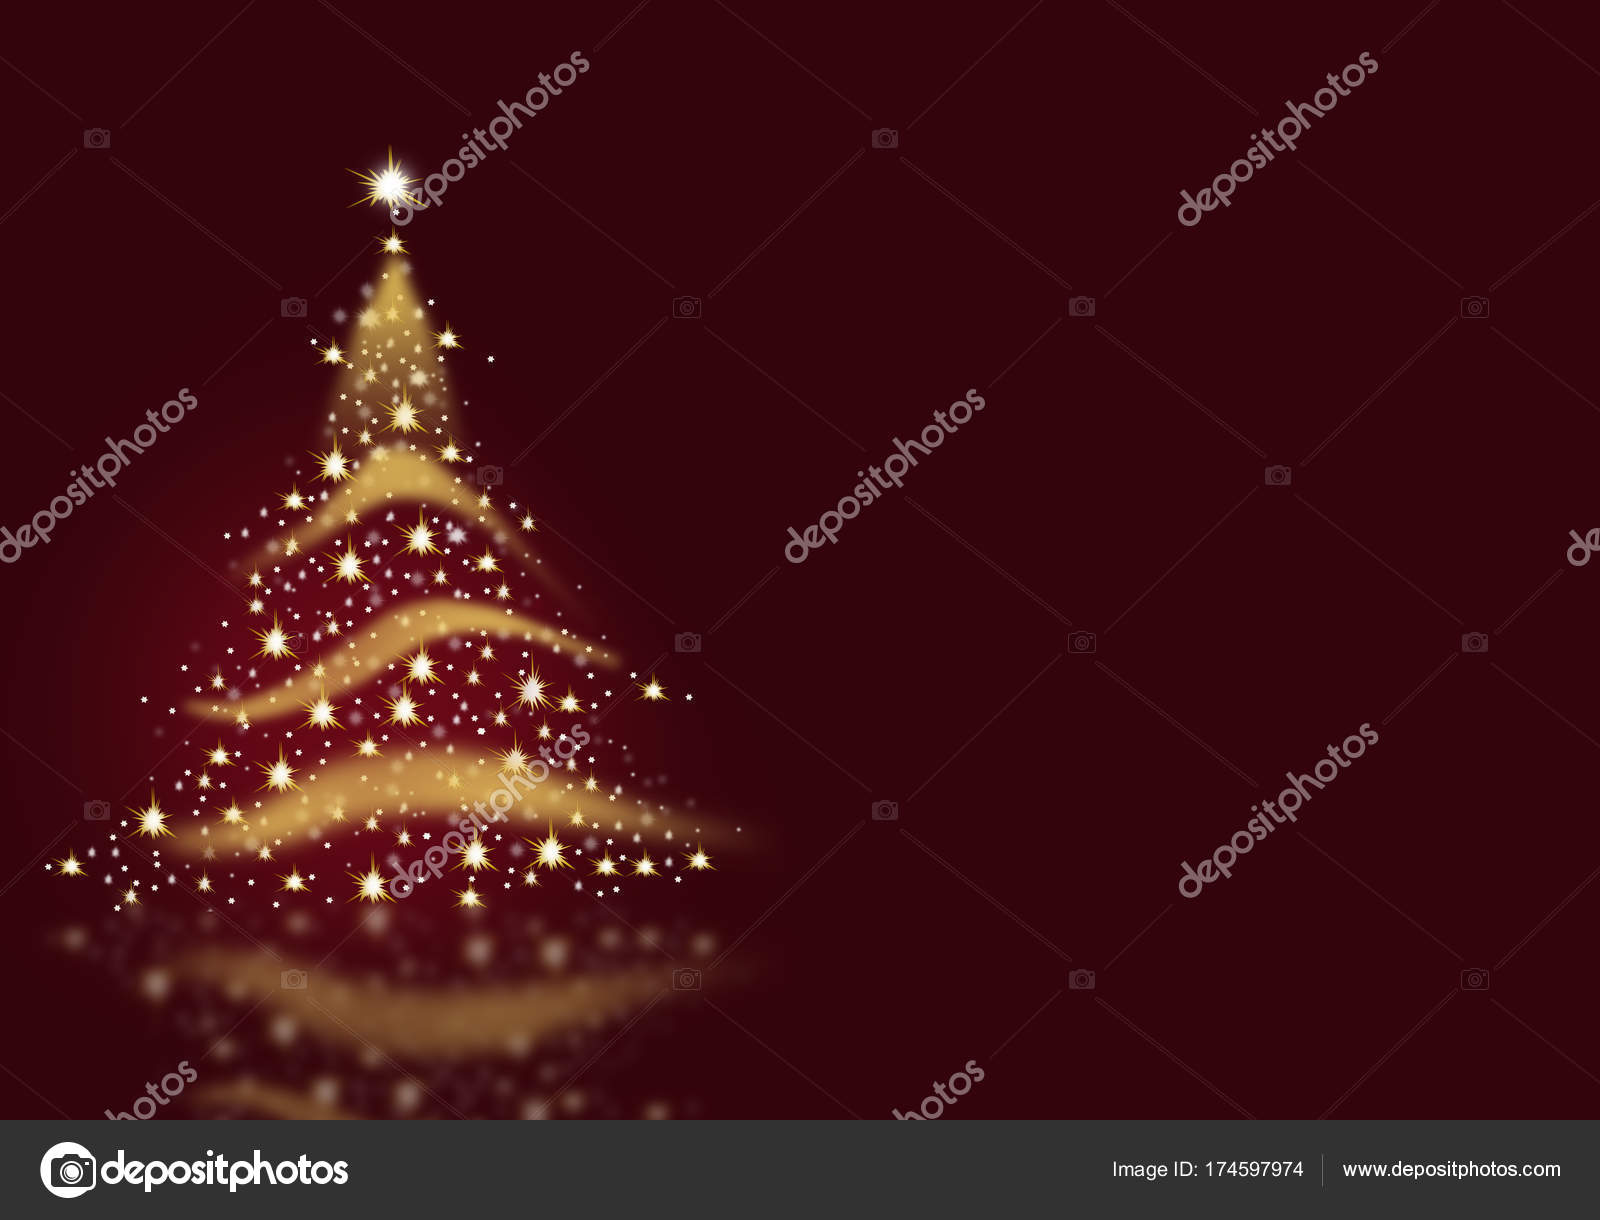 Christmas Tree Gold Lights Formed From Stars Background Blue Red